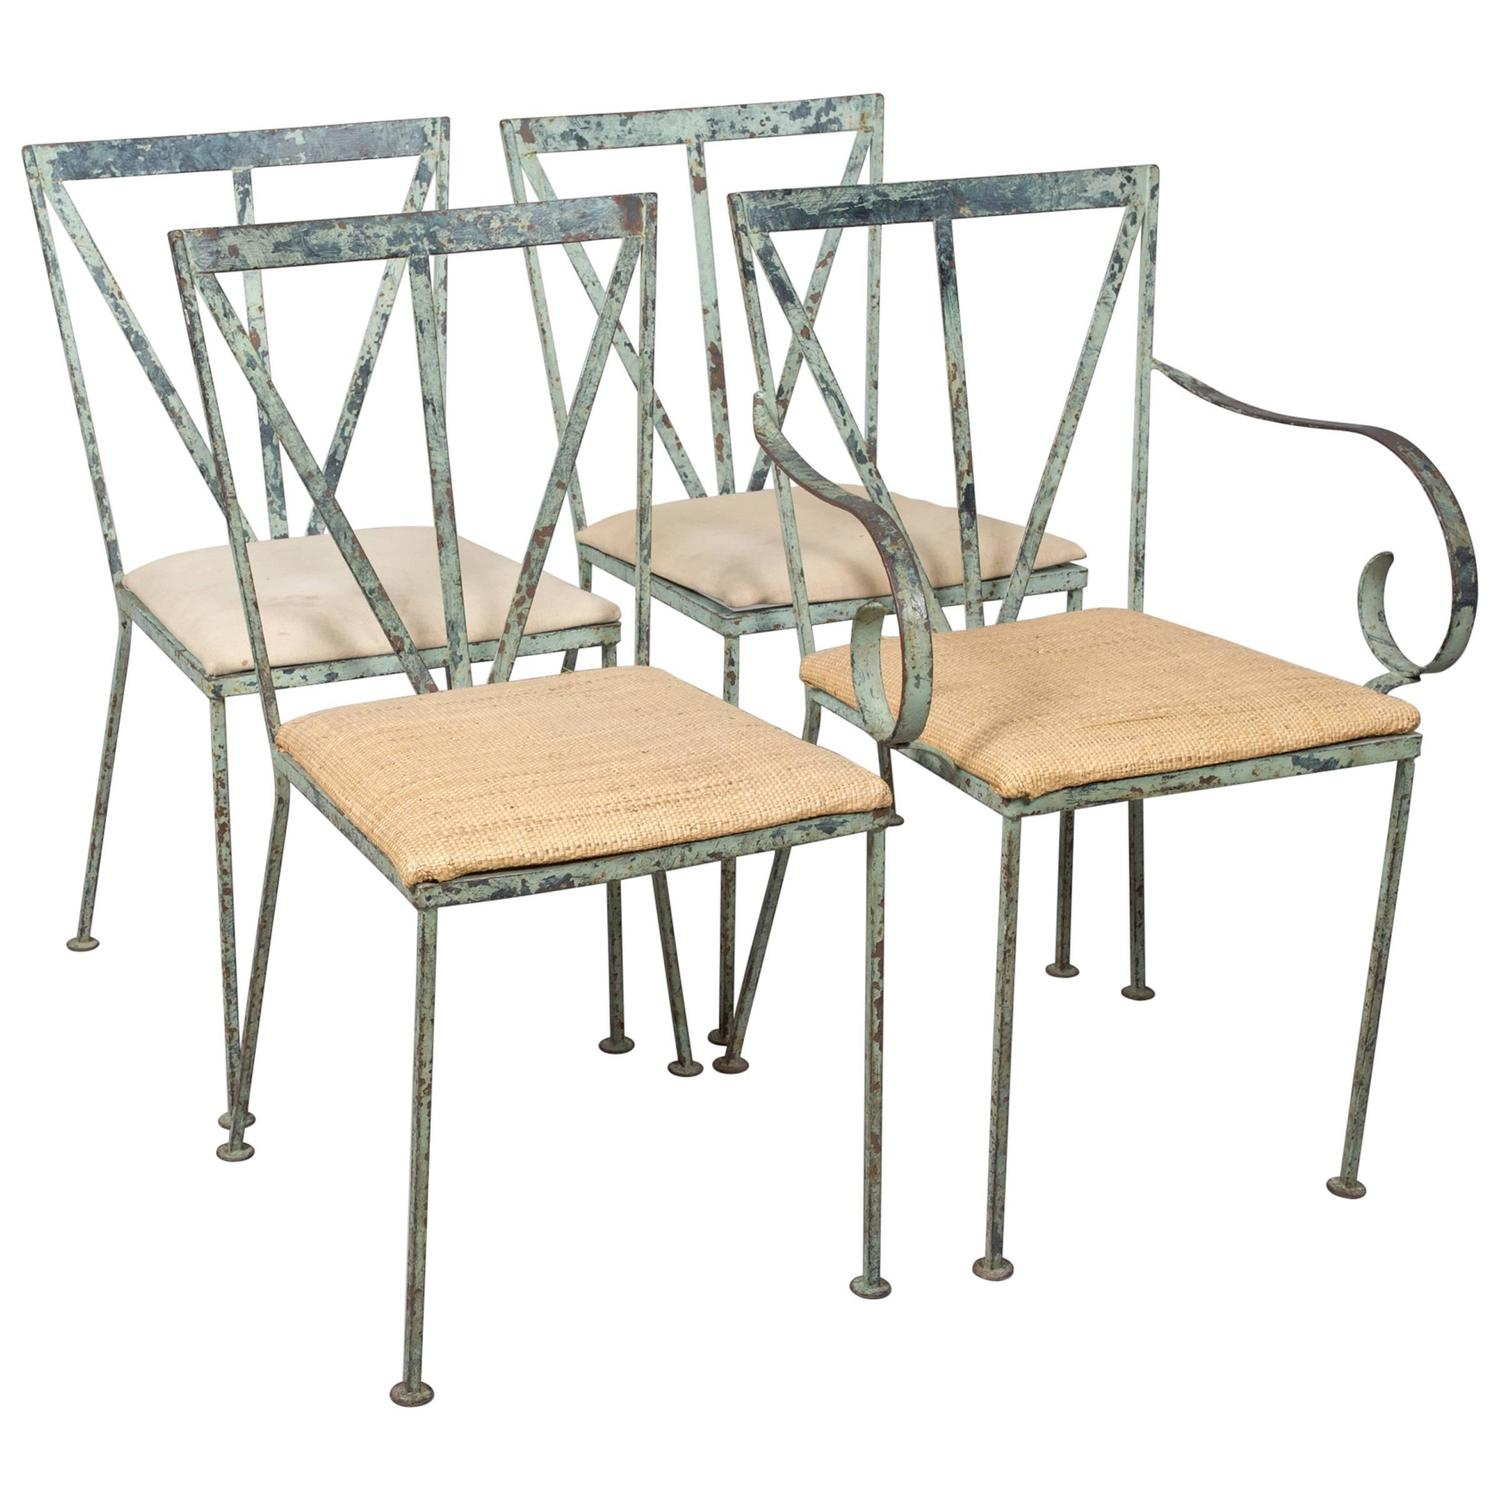 Set of Four Mid Century Garden Chairs For Sale at 1stdibs